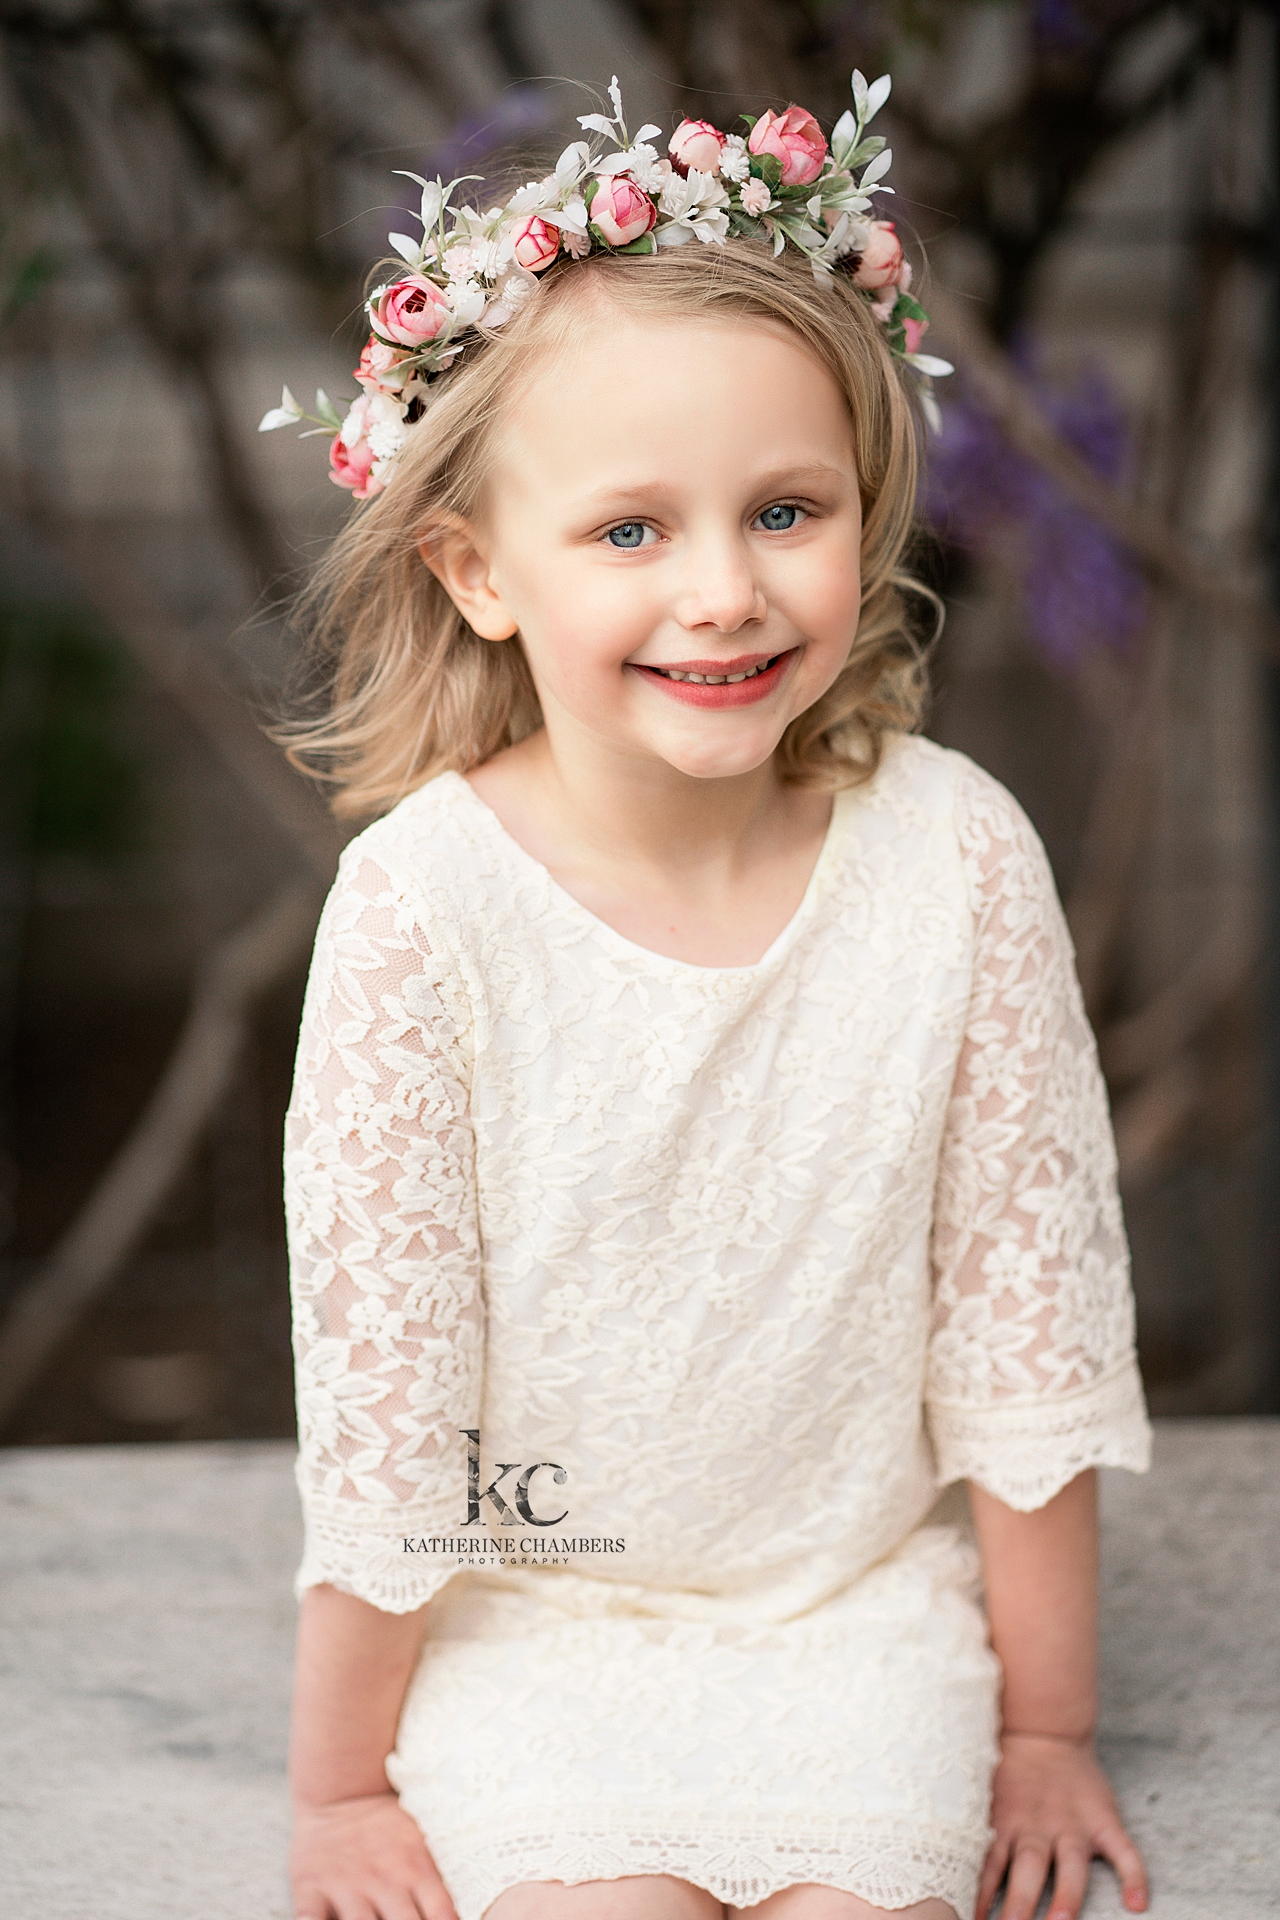 Child Photographer in Cleveland